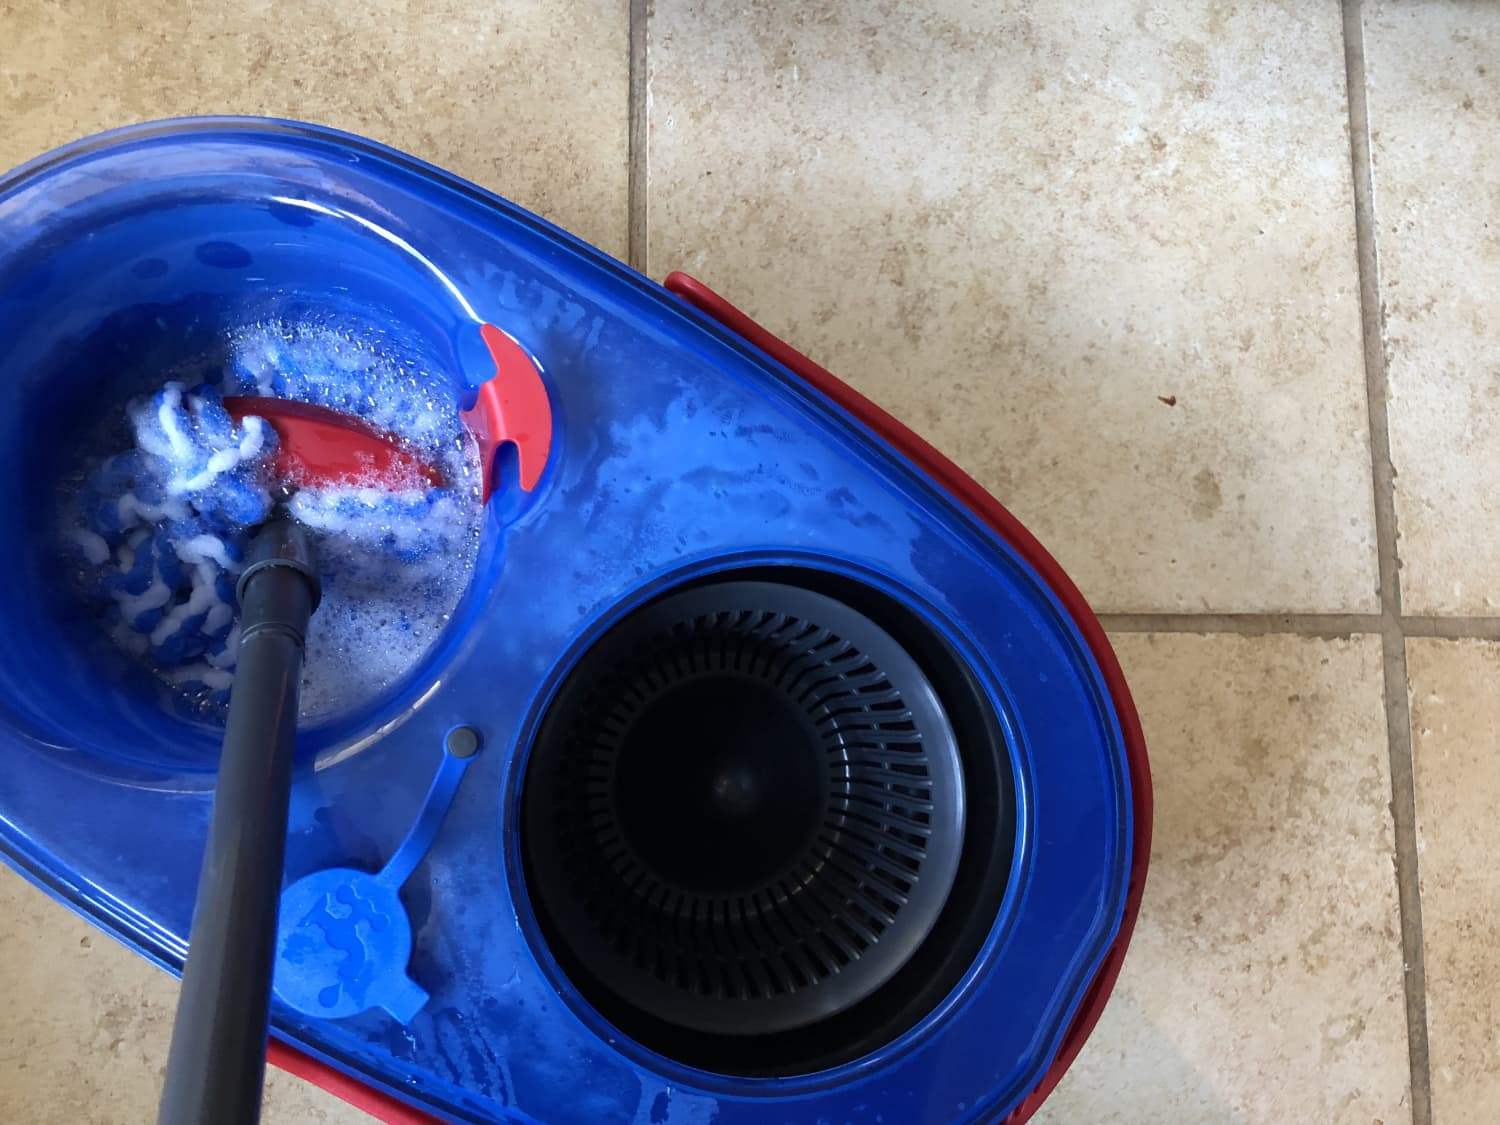 I Tried the Smart New Mop System That Keeps the Clean and Dirty Water *Totally* Separate